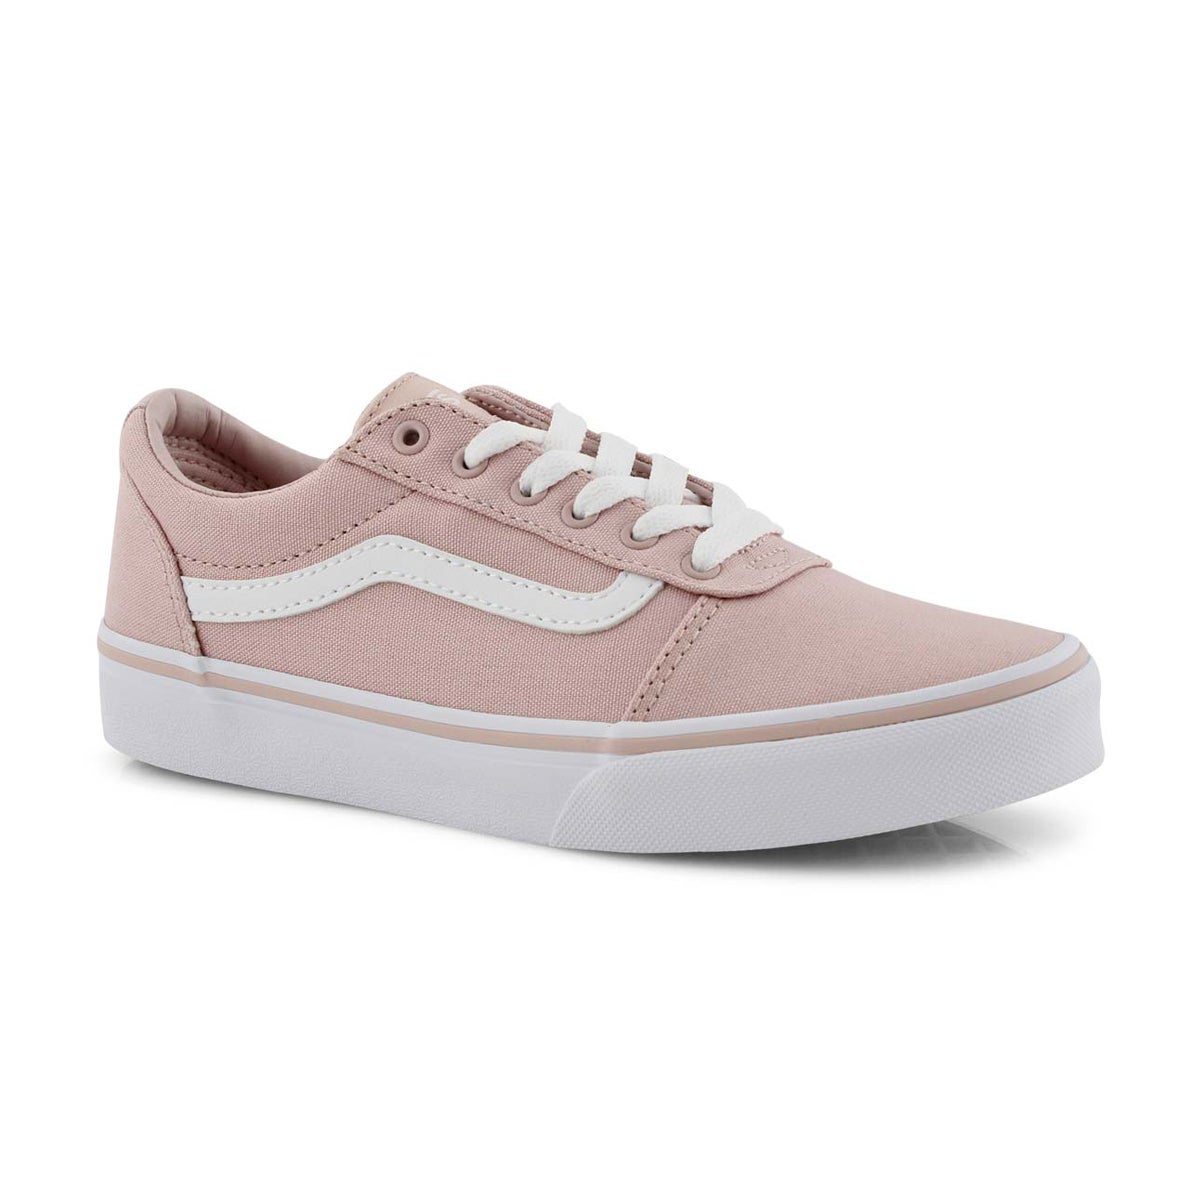 Grls Ward sepia rose lace up sneaker